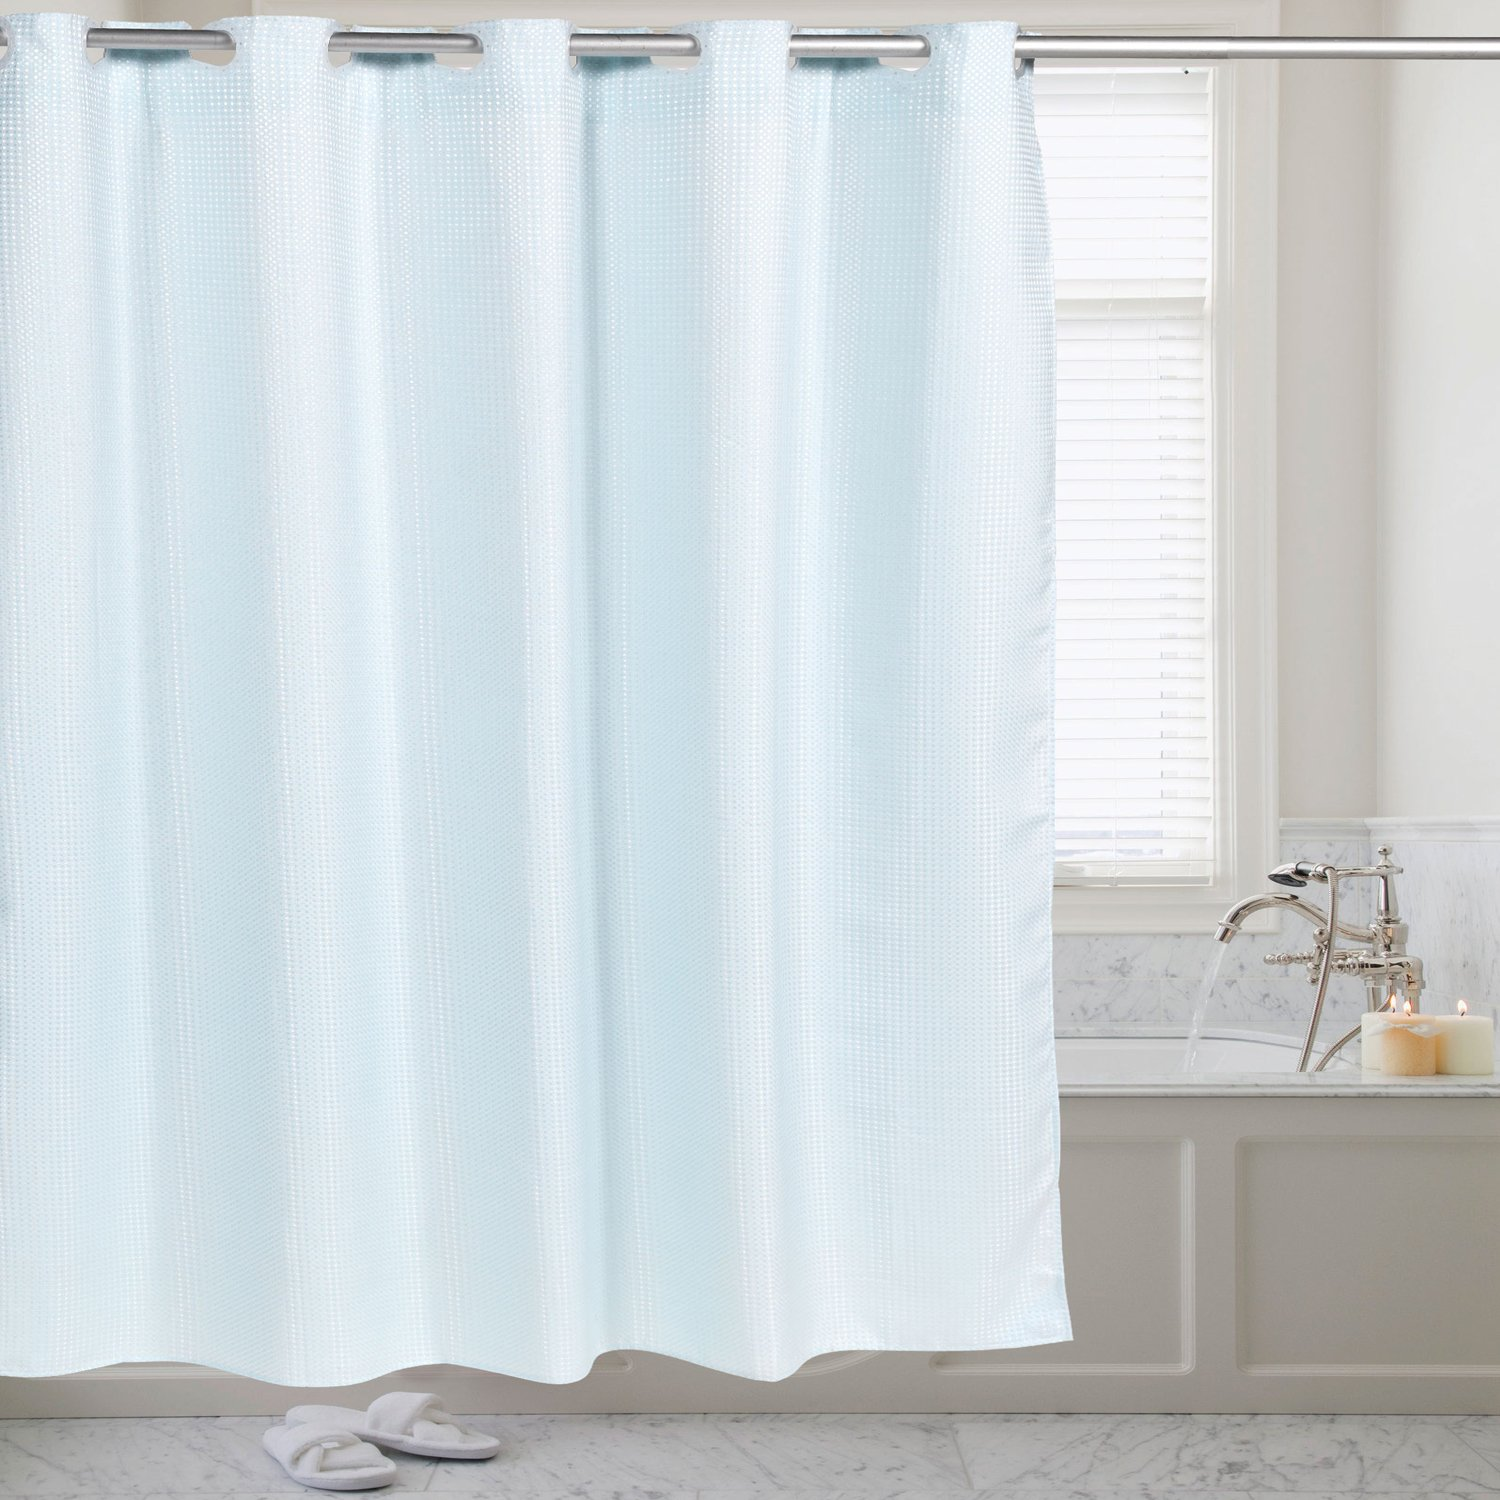 Sweet Home Collection Hookless 70' x 75' Shower Curtain Durable Water Repellent Resistant Fabric with Snap Off Liner in Solid Color Purple Fabric Hookless 70 x 75 Shower Curtain